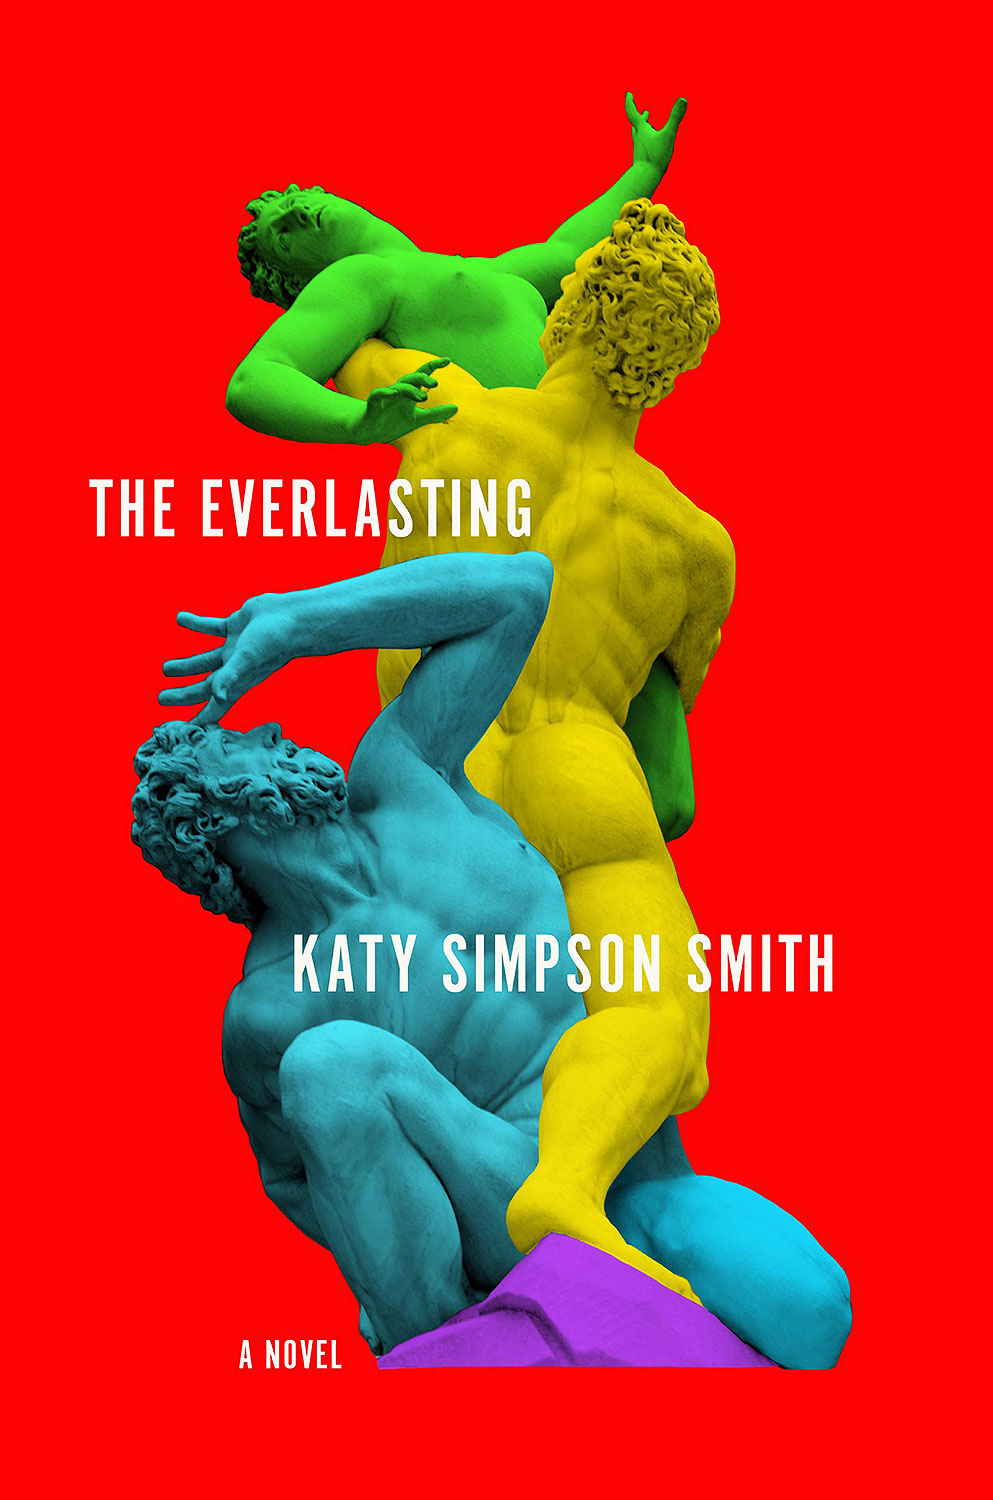 The Everlasting by Katy Simpson-Smith